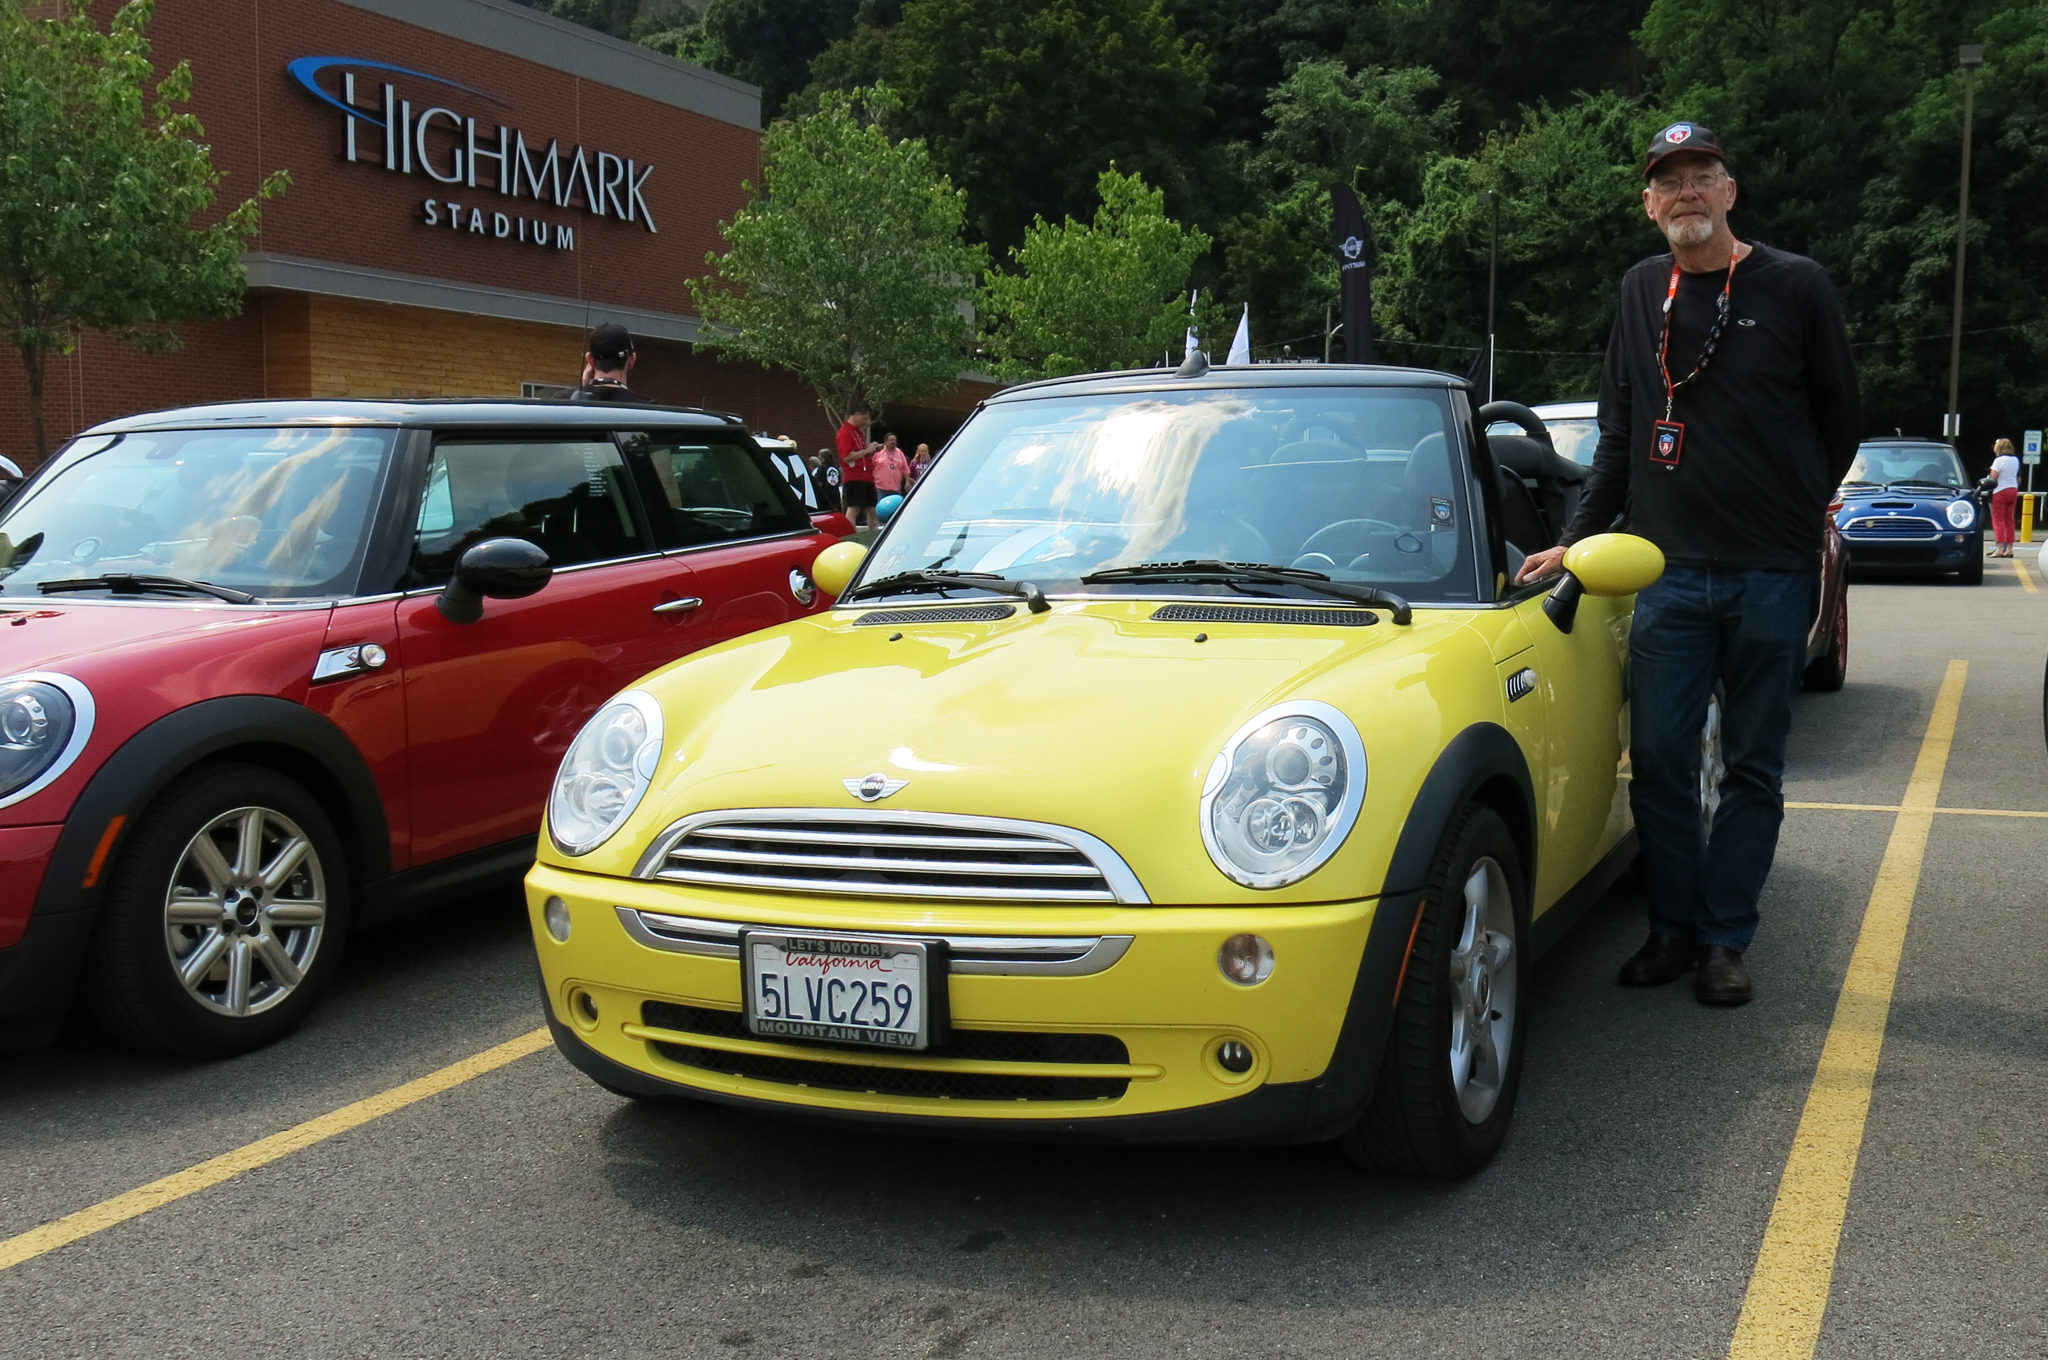 Dan Todd of Palo Alto, CA, and his Liquid Yellow 2002 Mini Cooper convertible. This is his second MTTS, but his first cross-country run. He also has a yellow 2005 Mini Cooper S that he takes to track days every now and then.